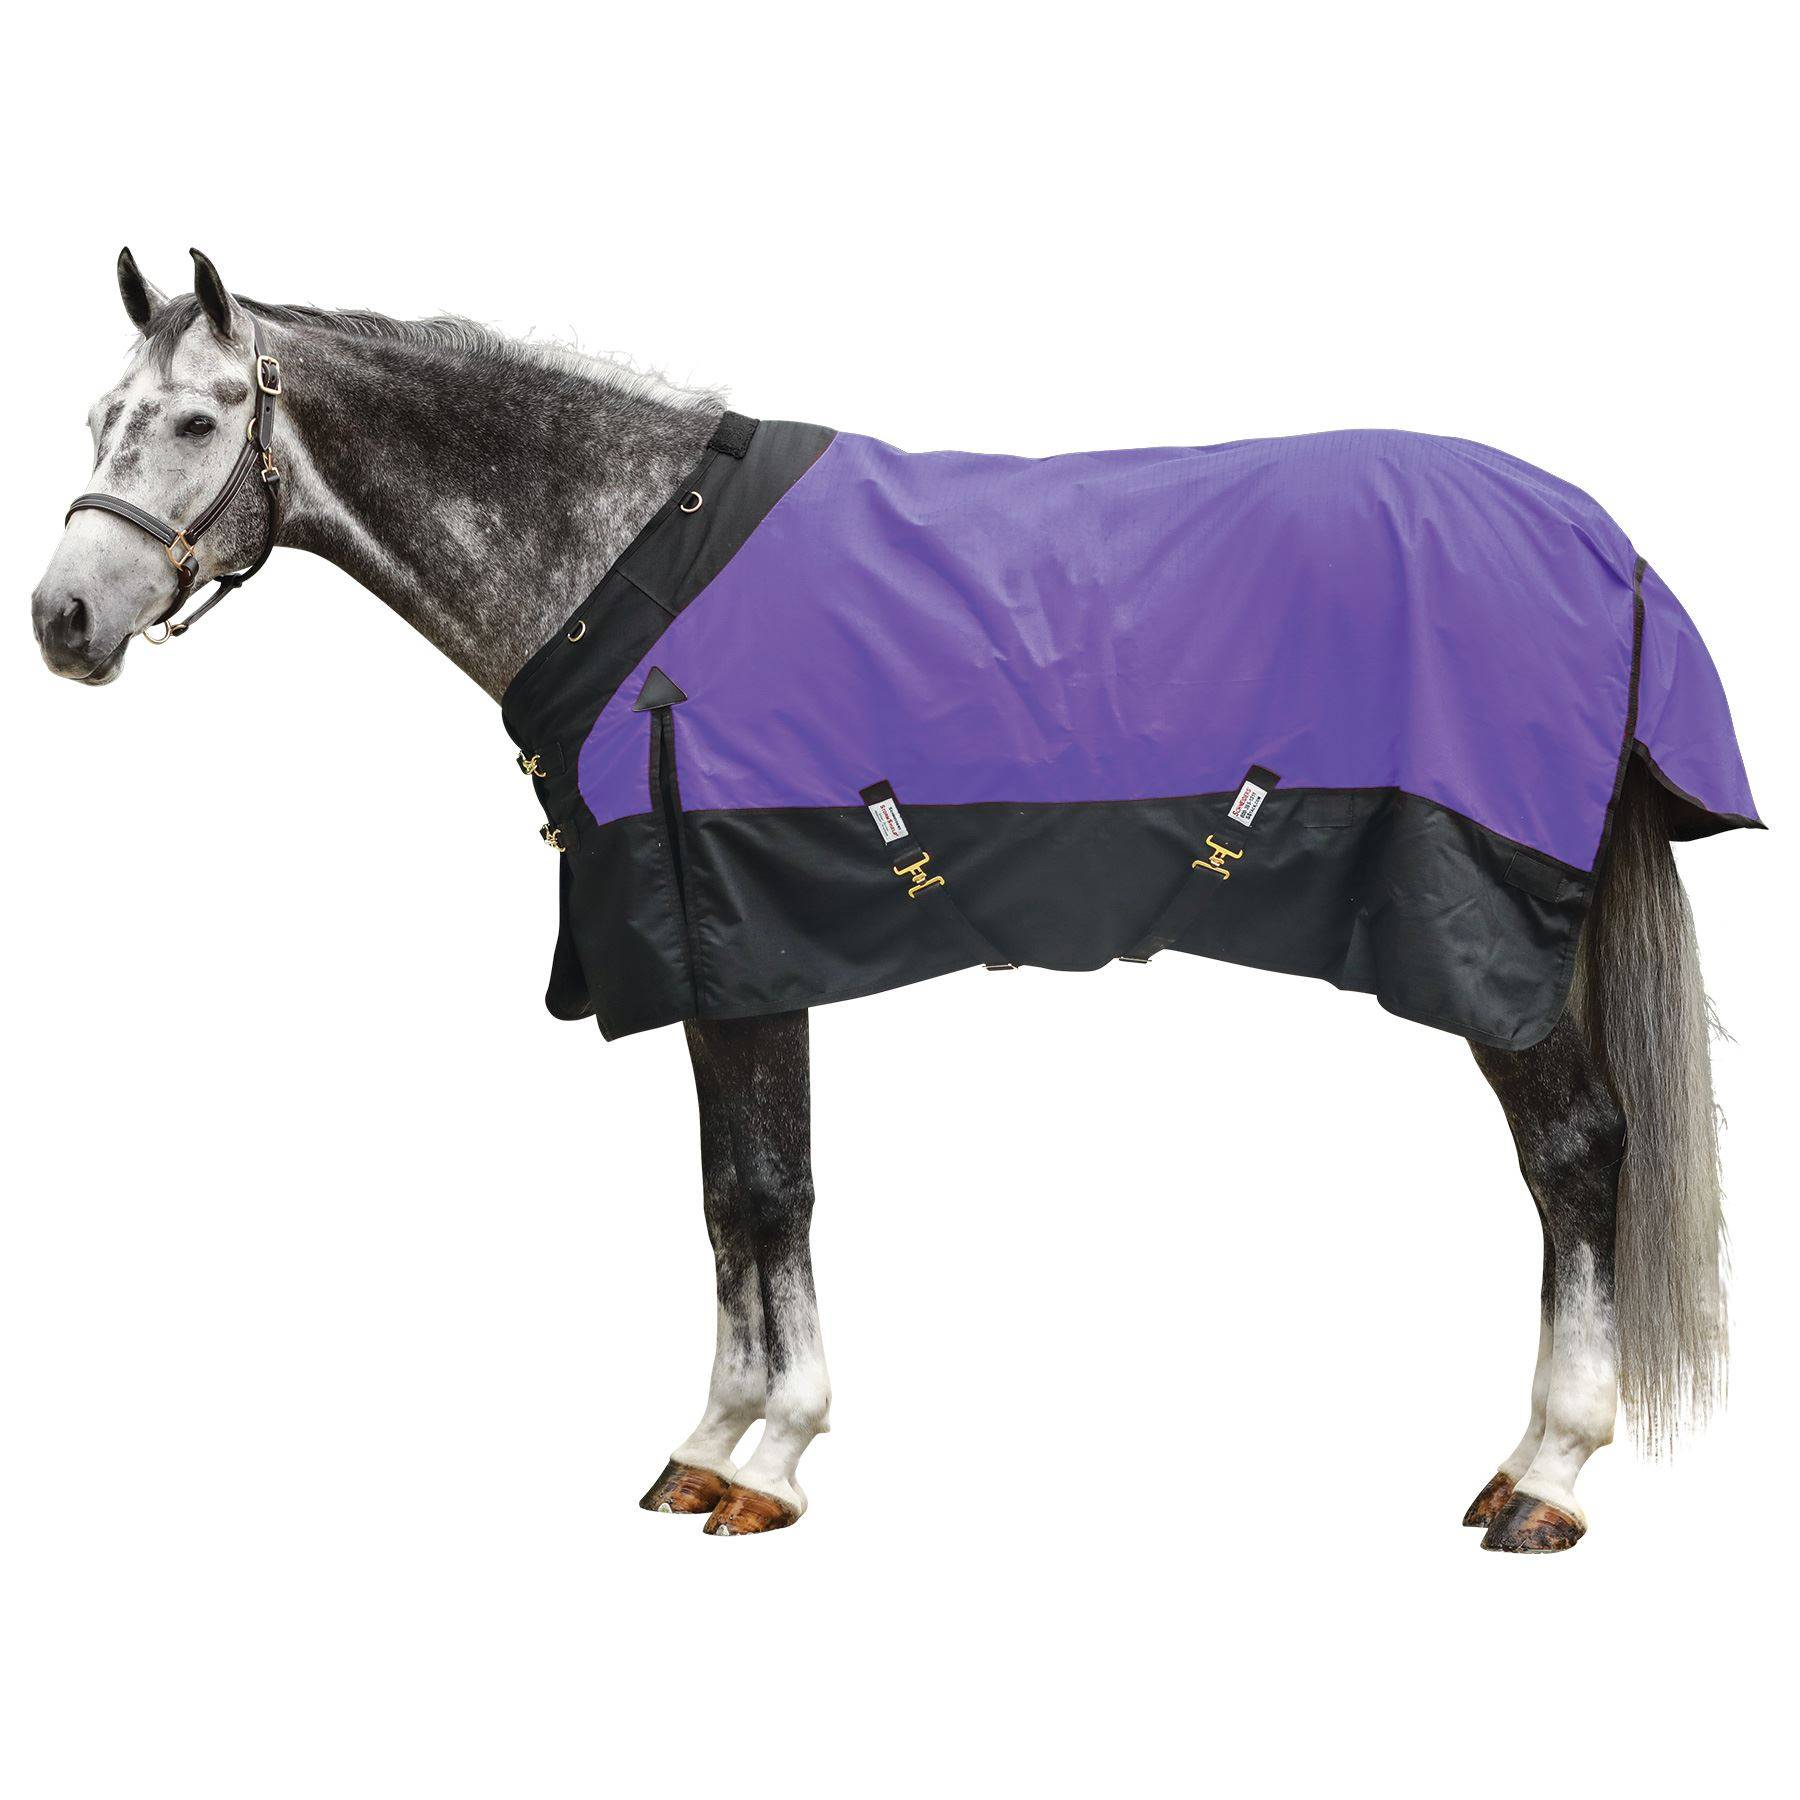 StormShield® Contour Collar Classic Surcingle Turnout Blanket - Midweight